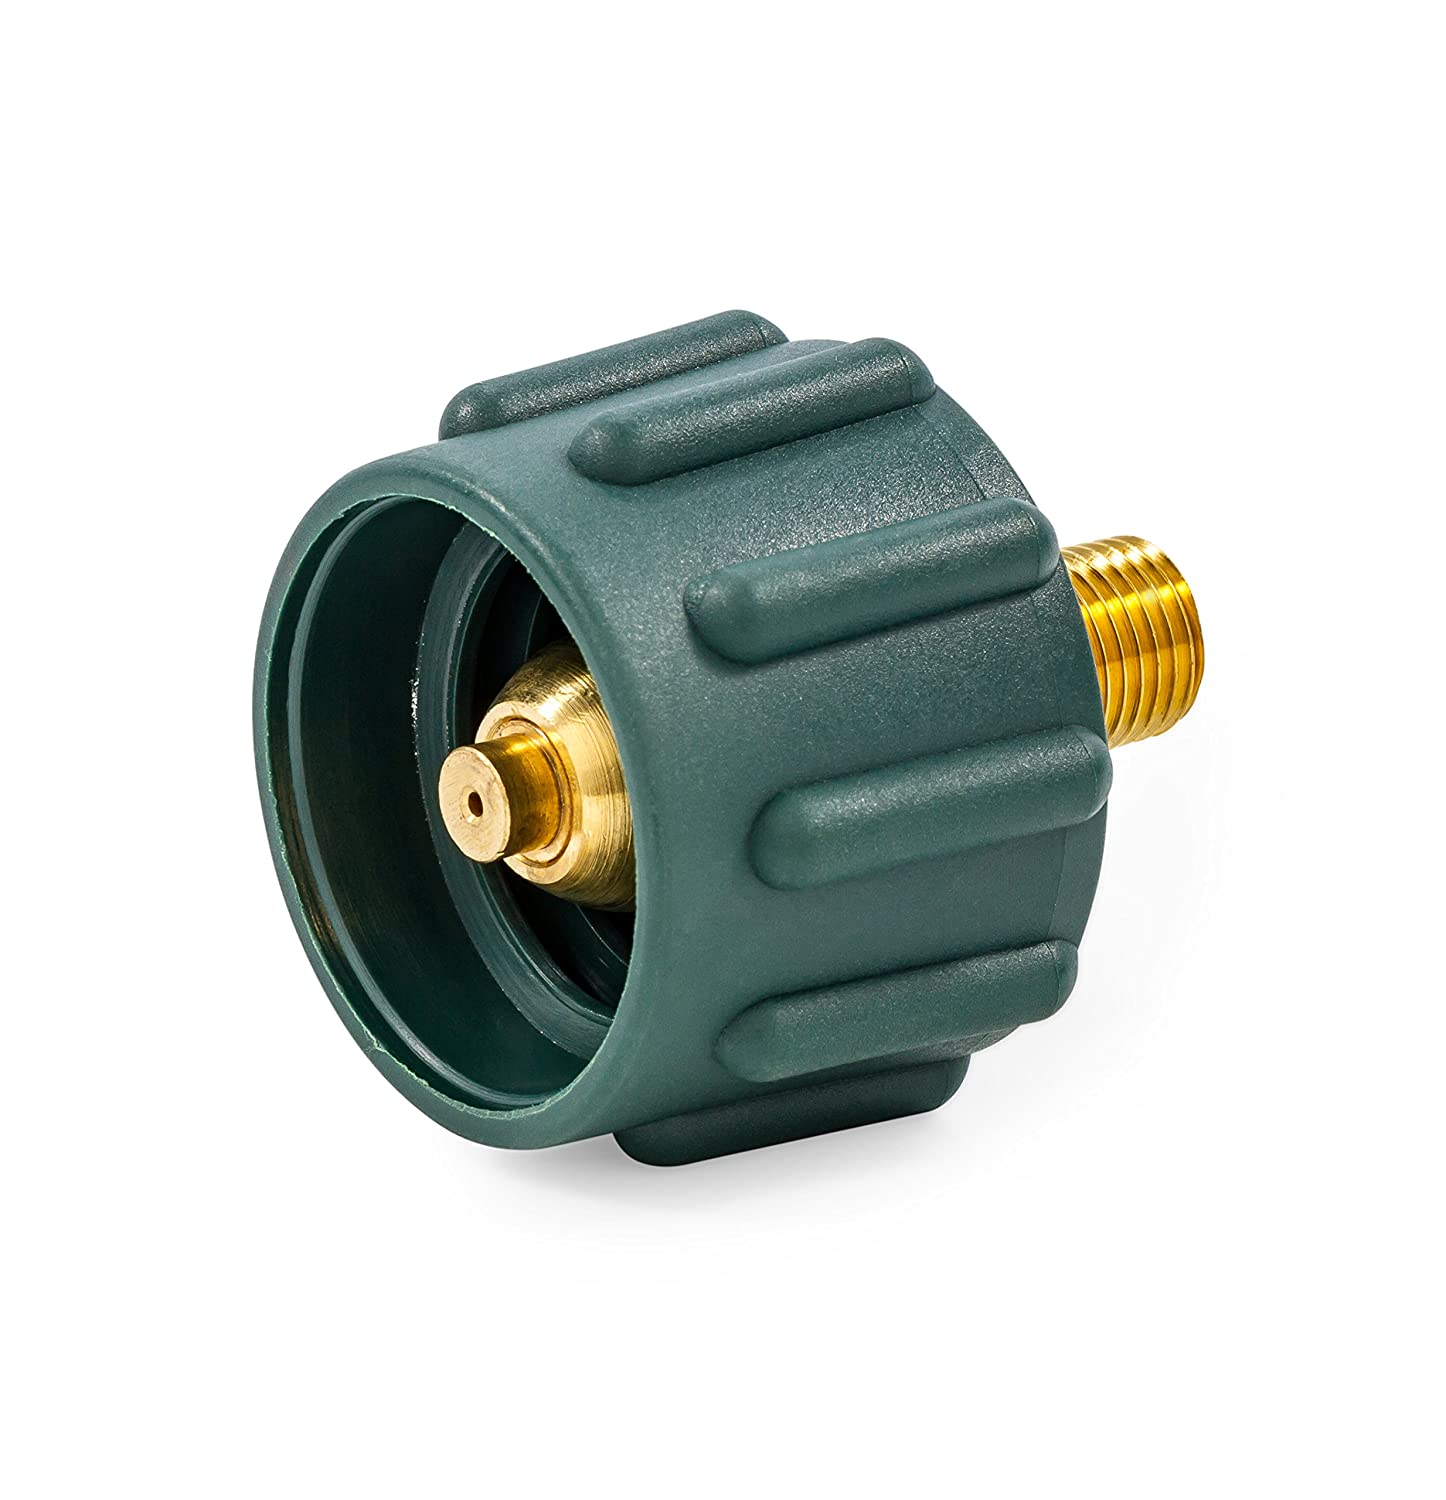 Camco 59923 Green Propane Acme Nut - 200, 000 BTUs 33156089